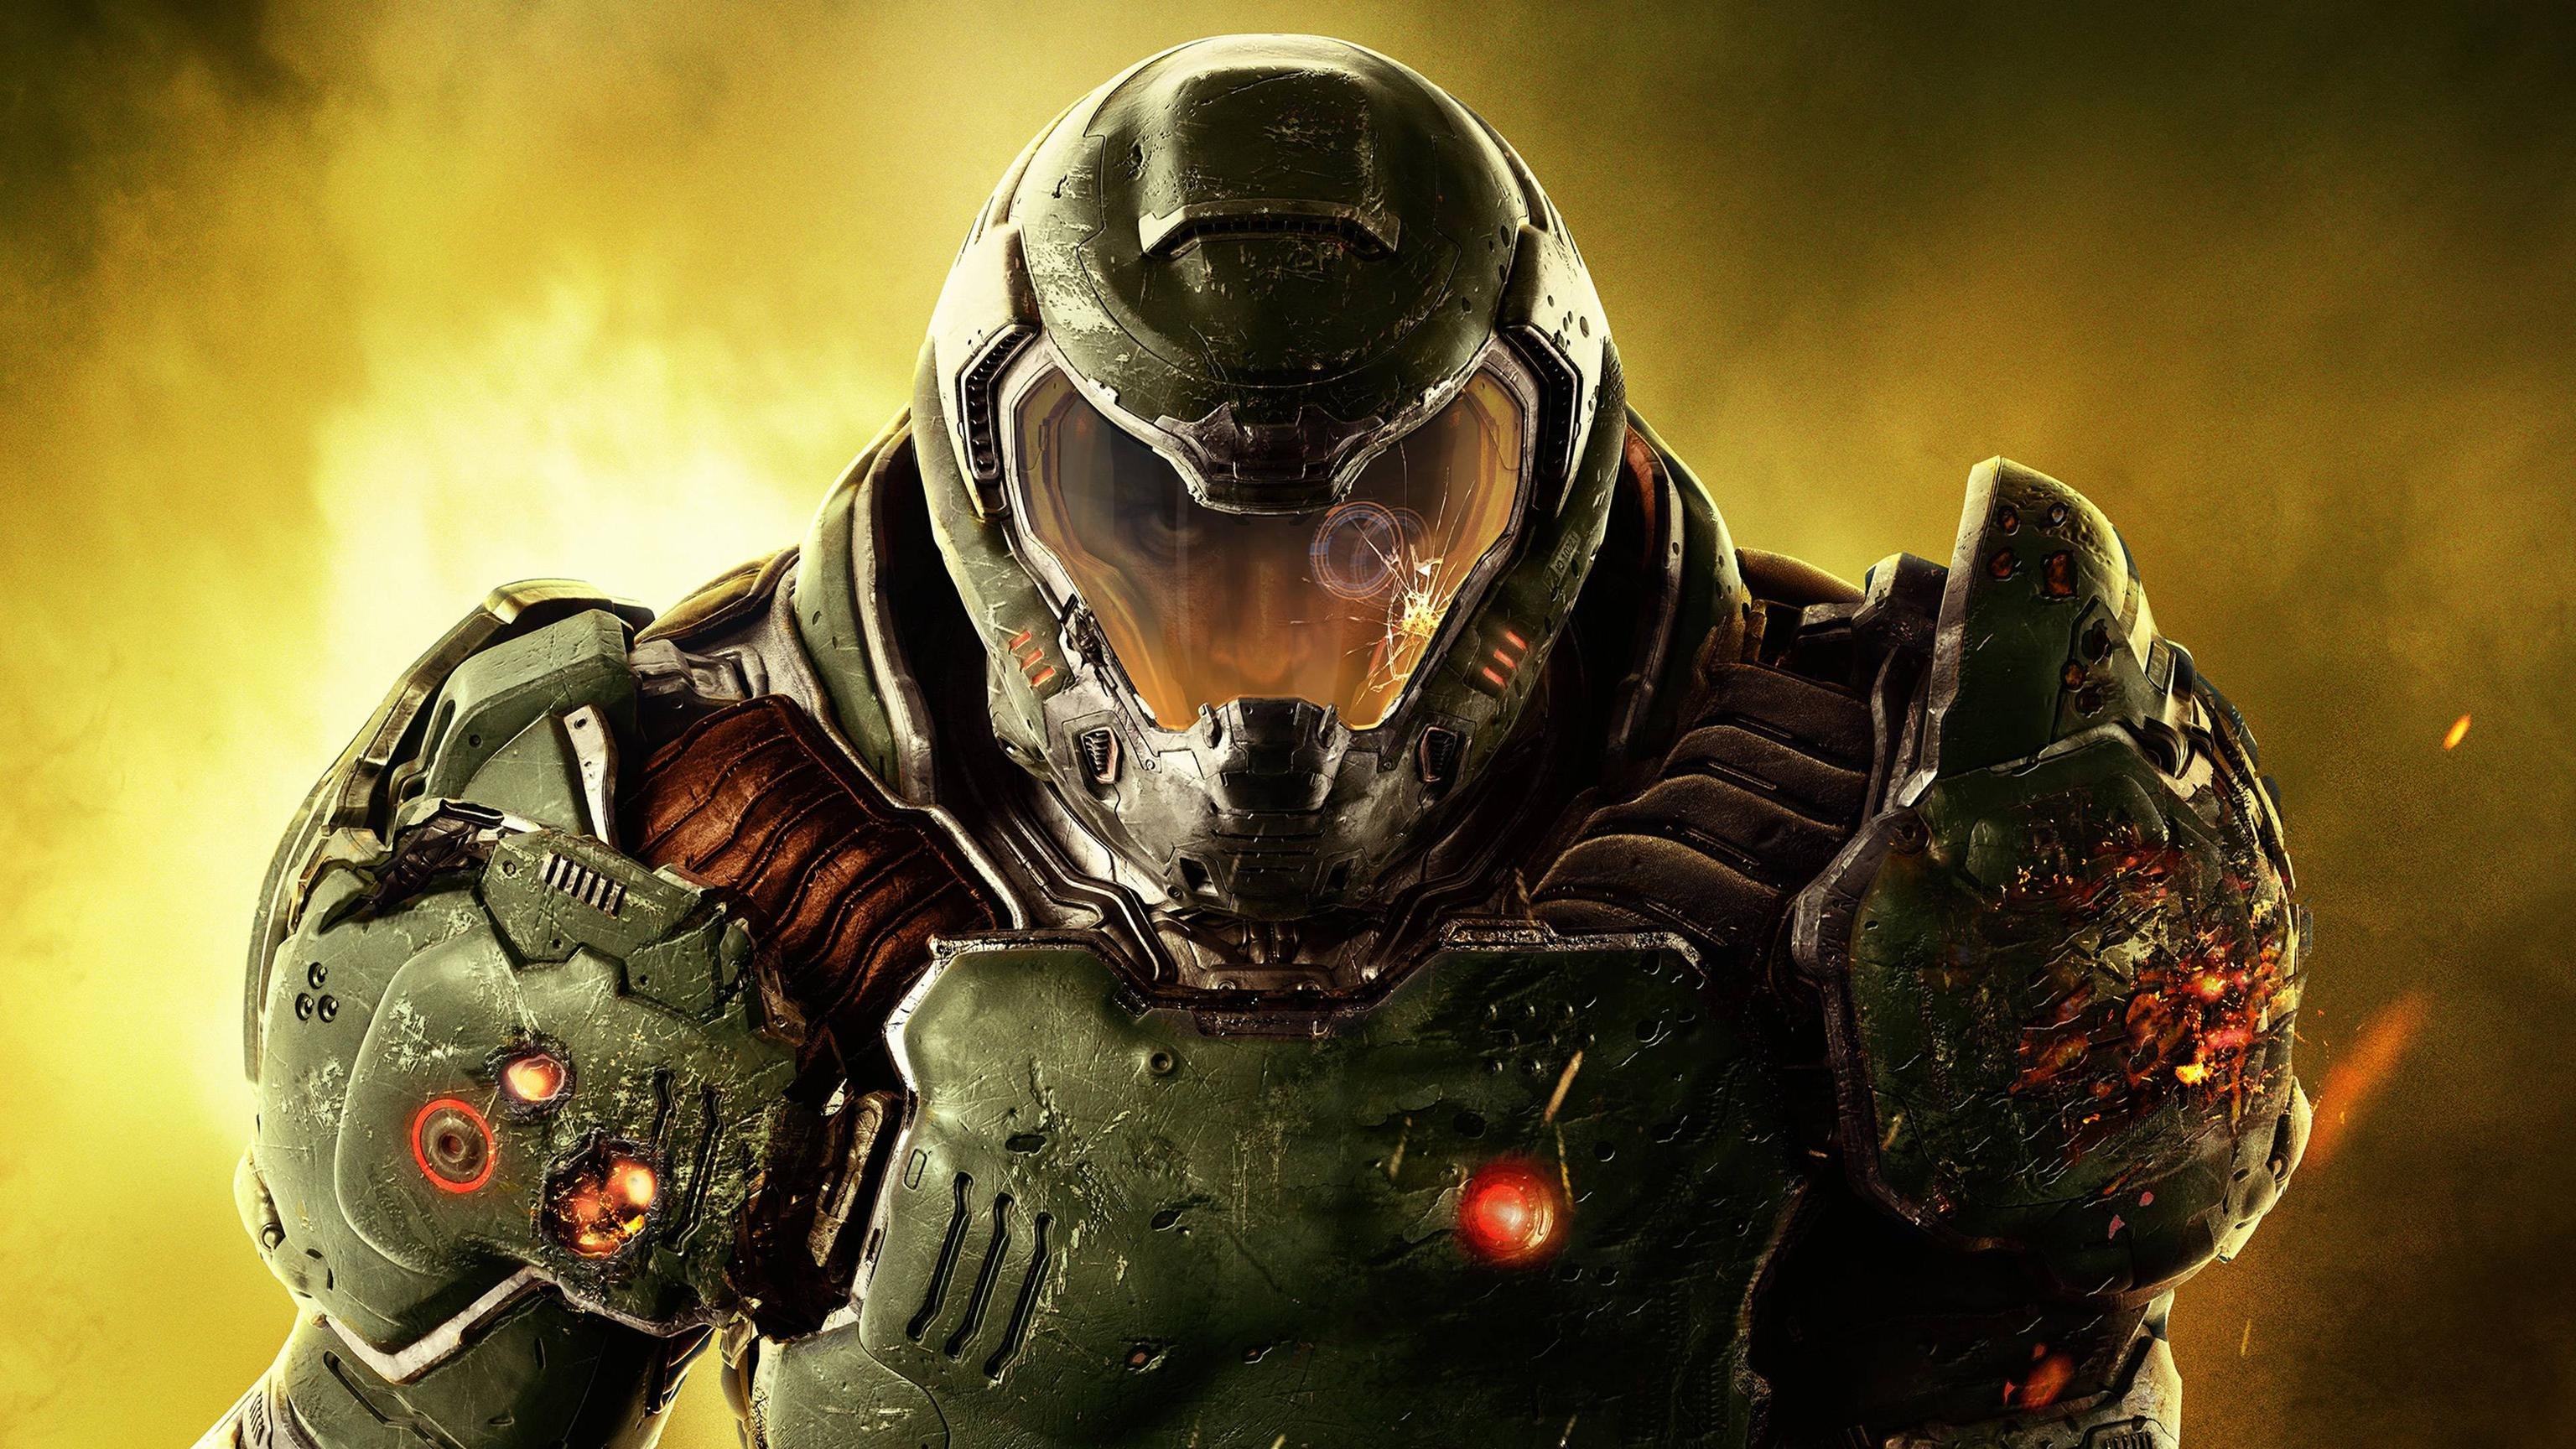 doom 4 2016 video game hd games 4k wallpapers images